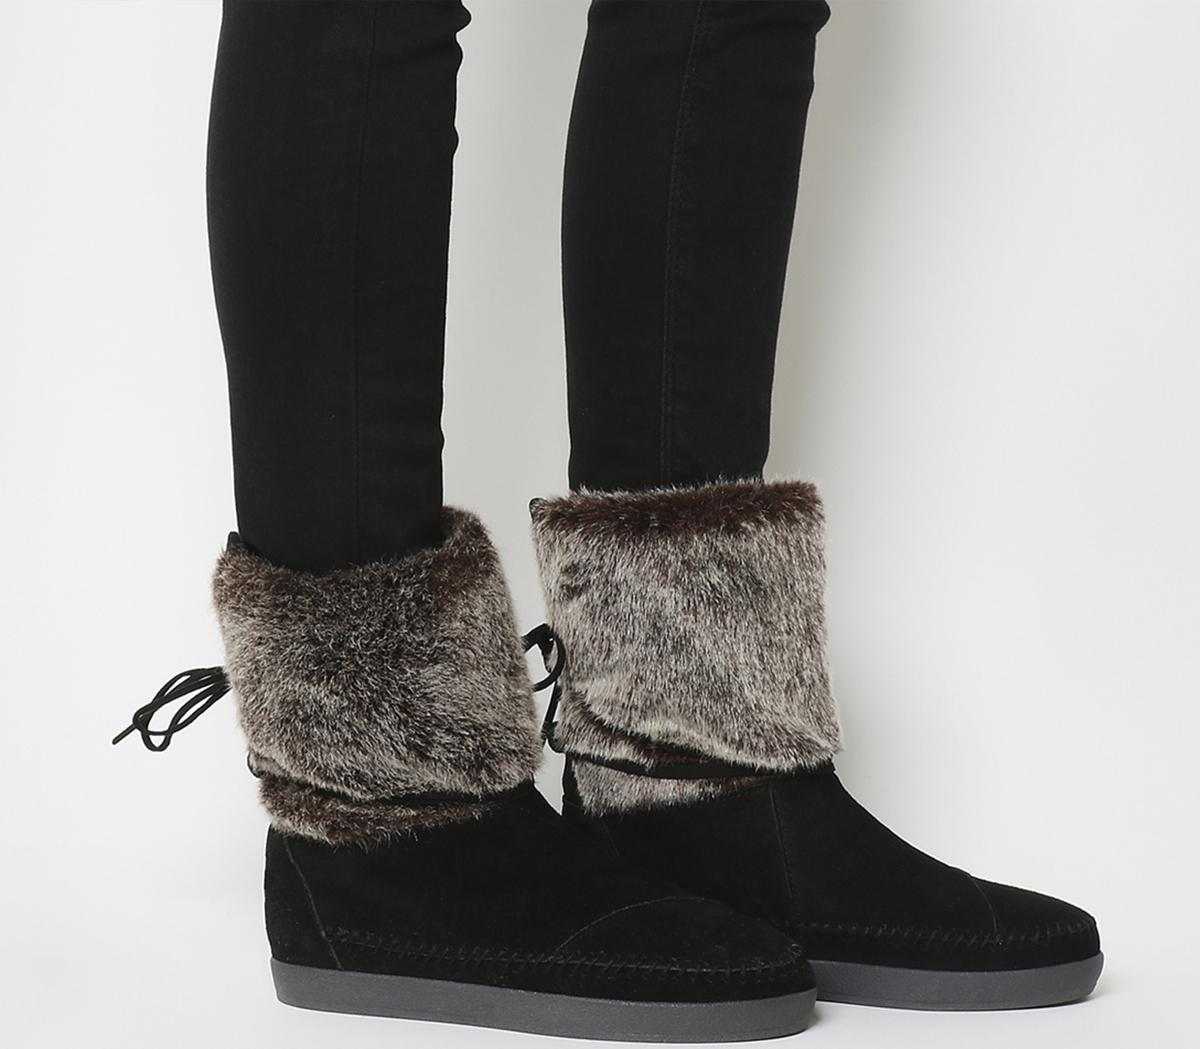 Toms Nepal Boots Black Suede Faux Hair